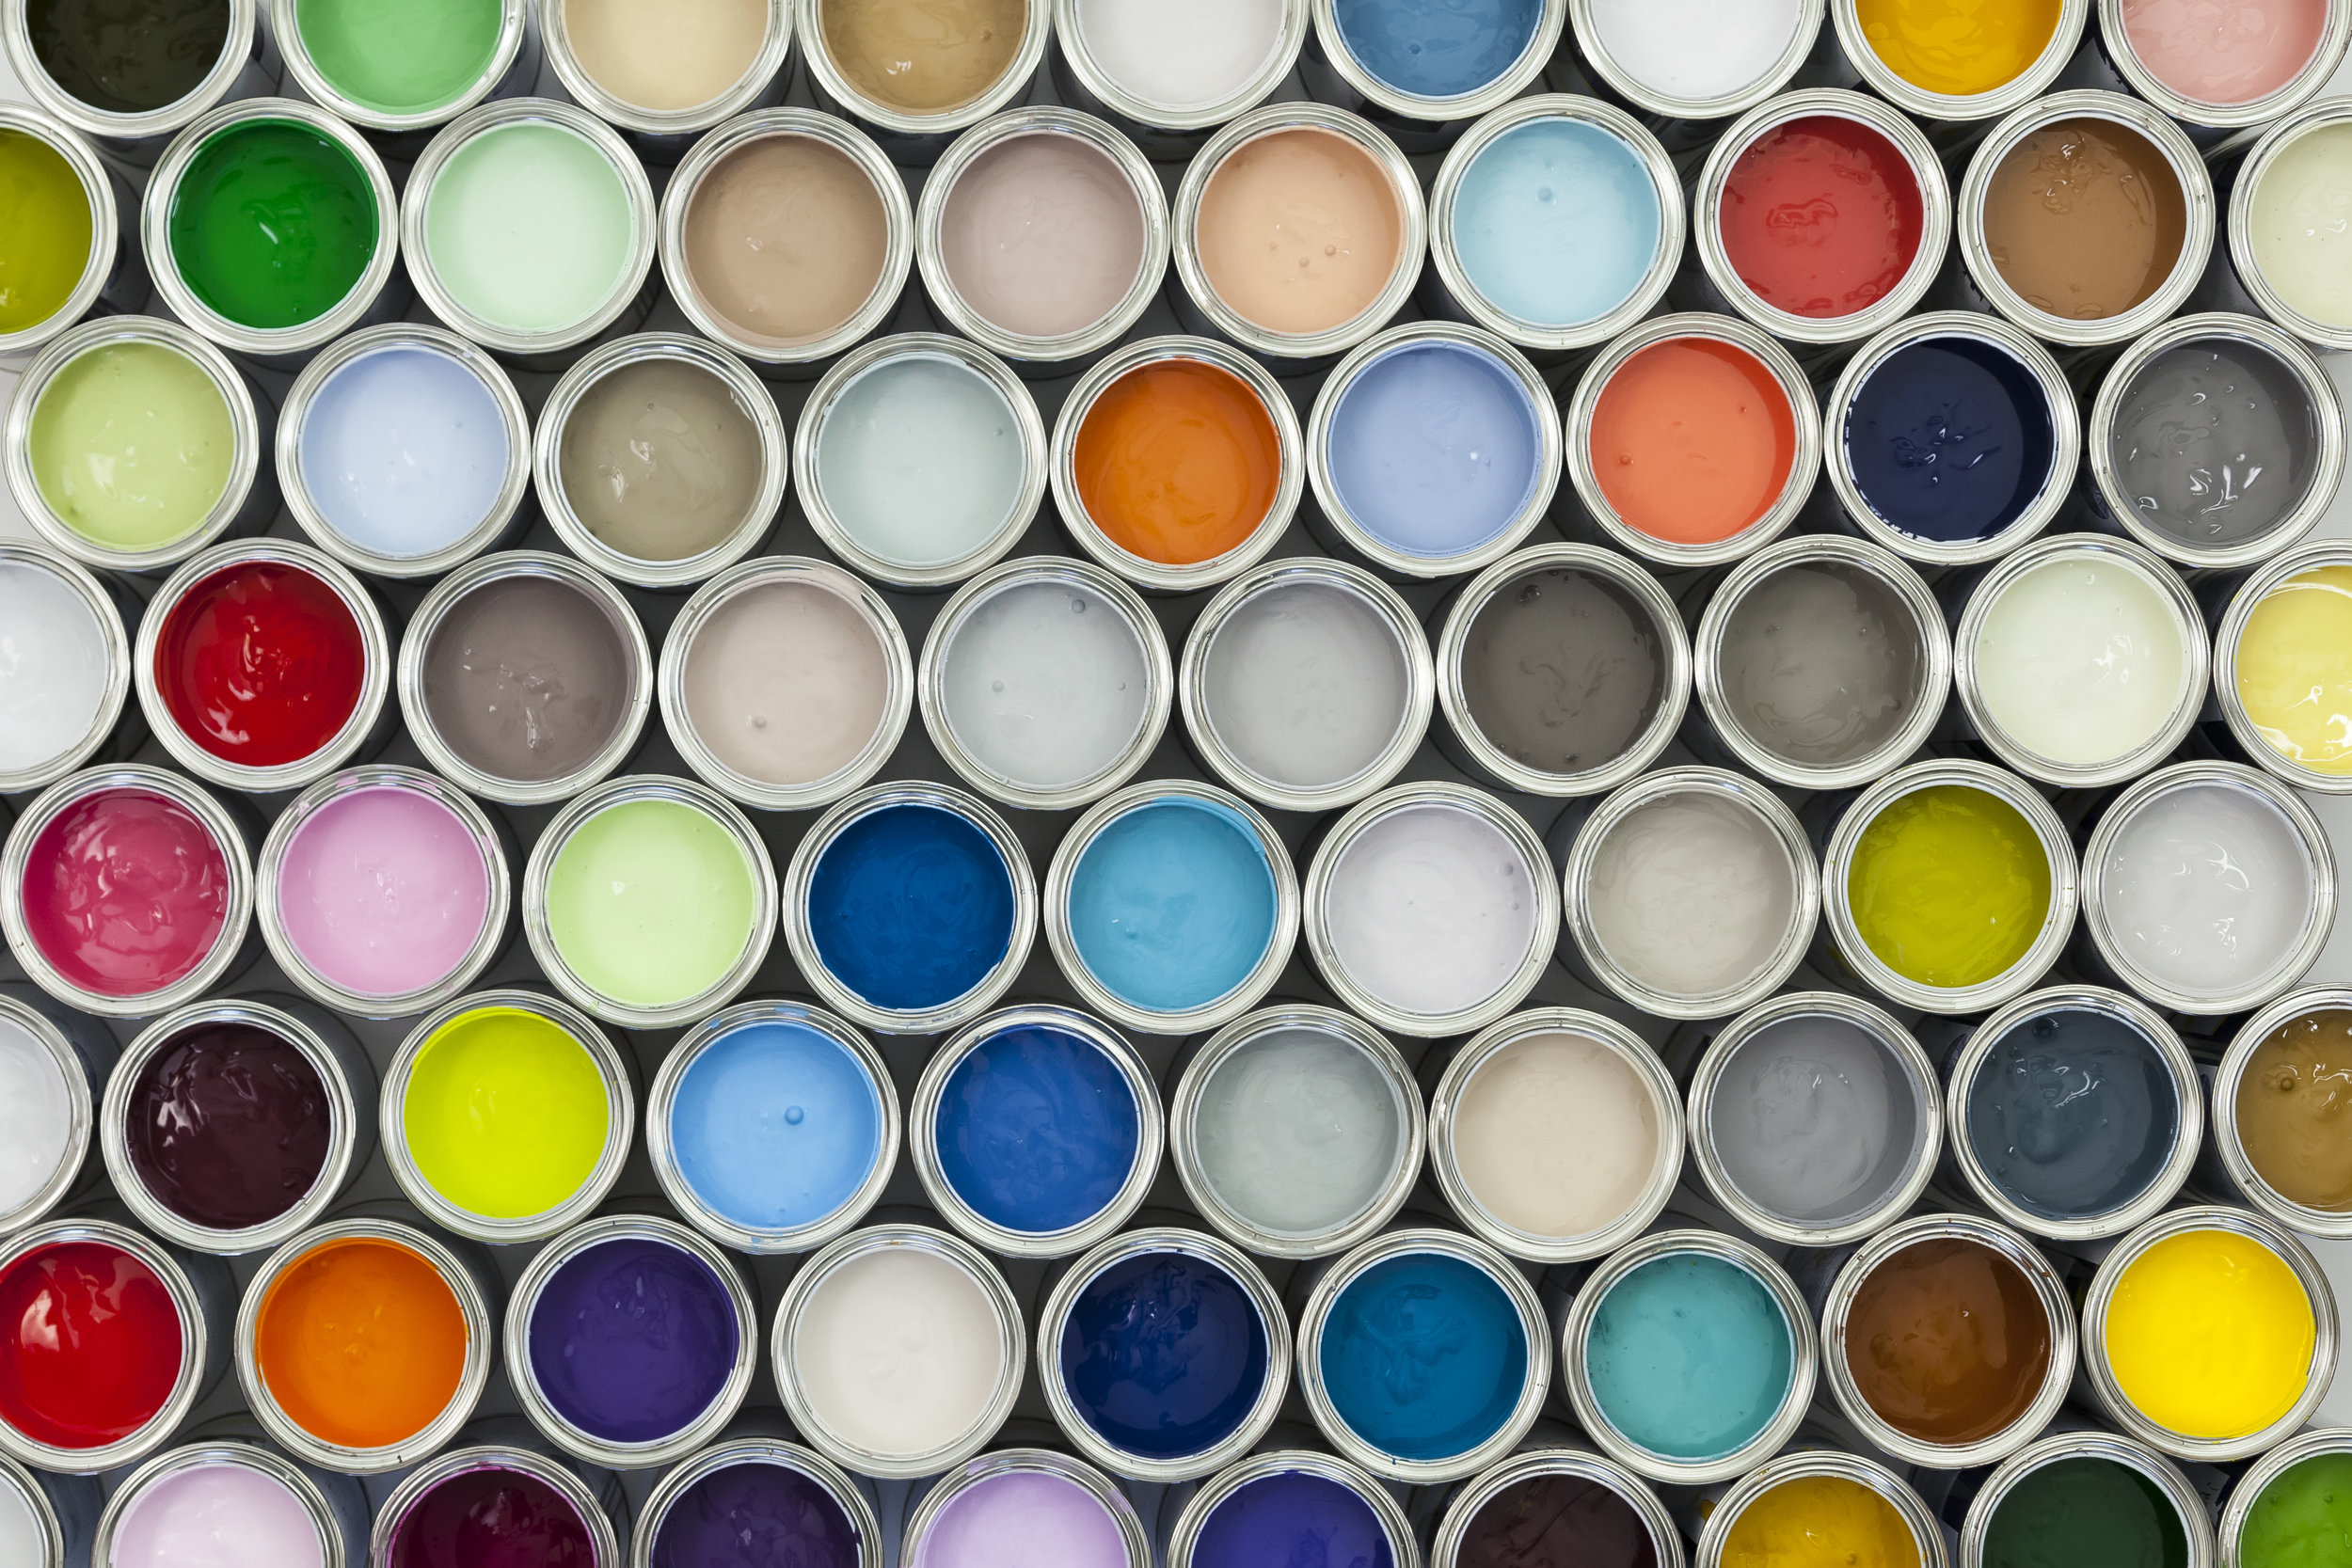 Which paint colour should you choose? - Just ask and we'll be happy to help you pick.